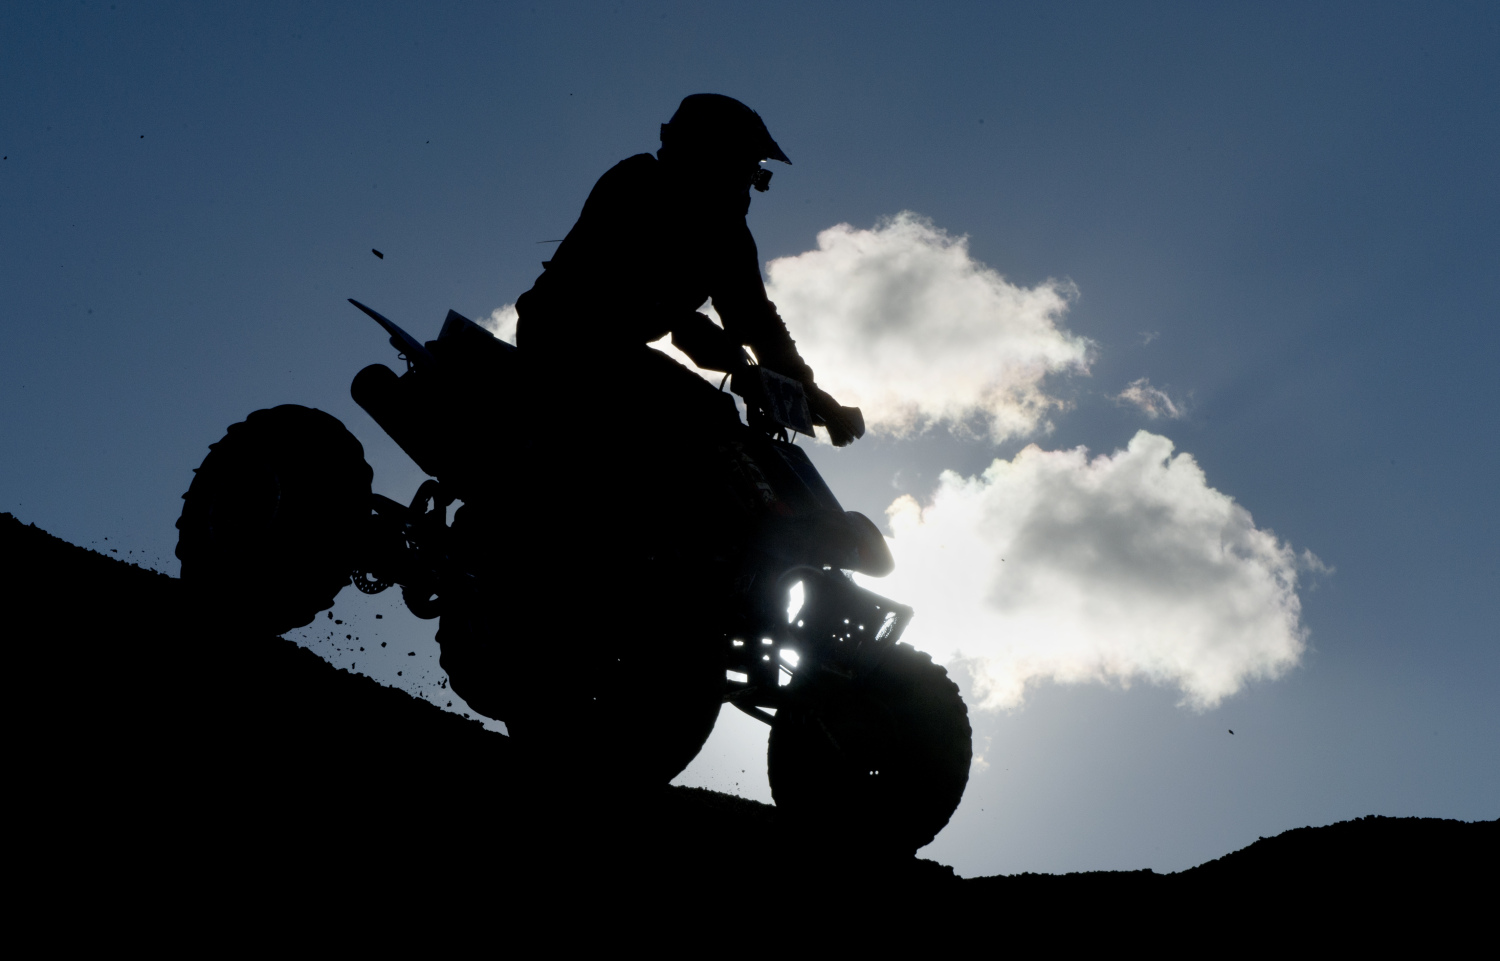 Driver of ATV injured during rollover